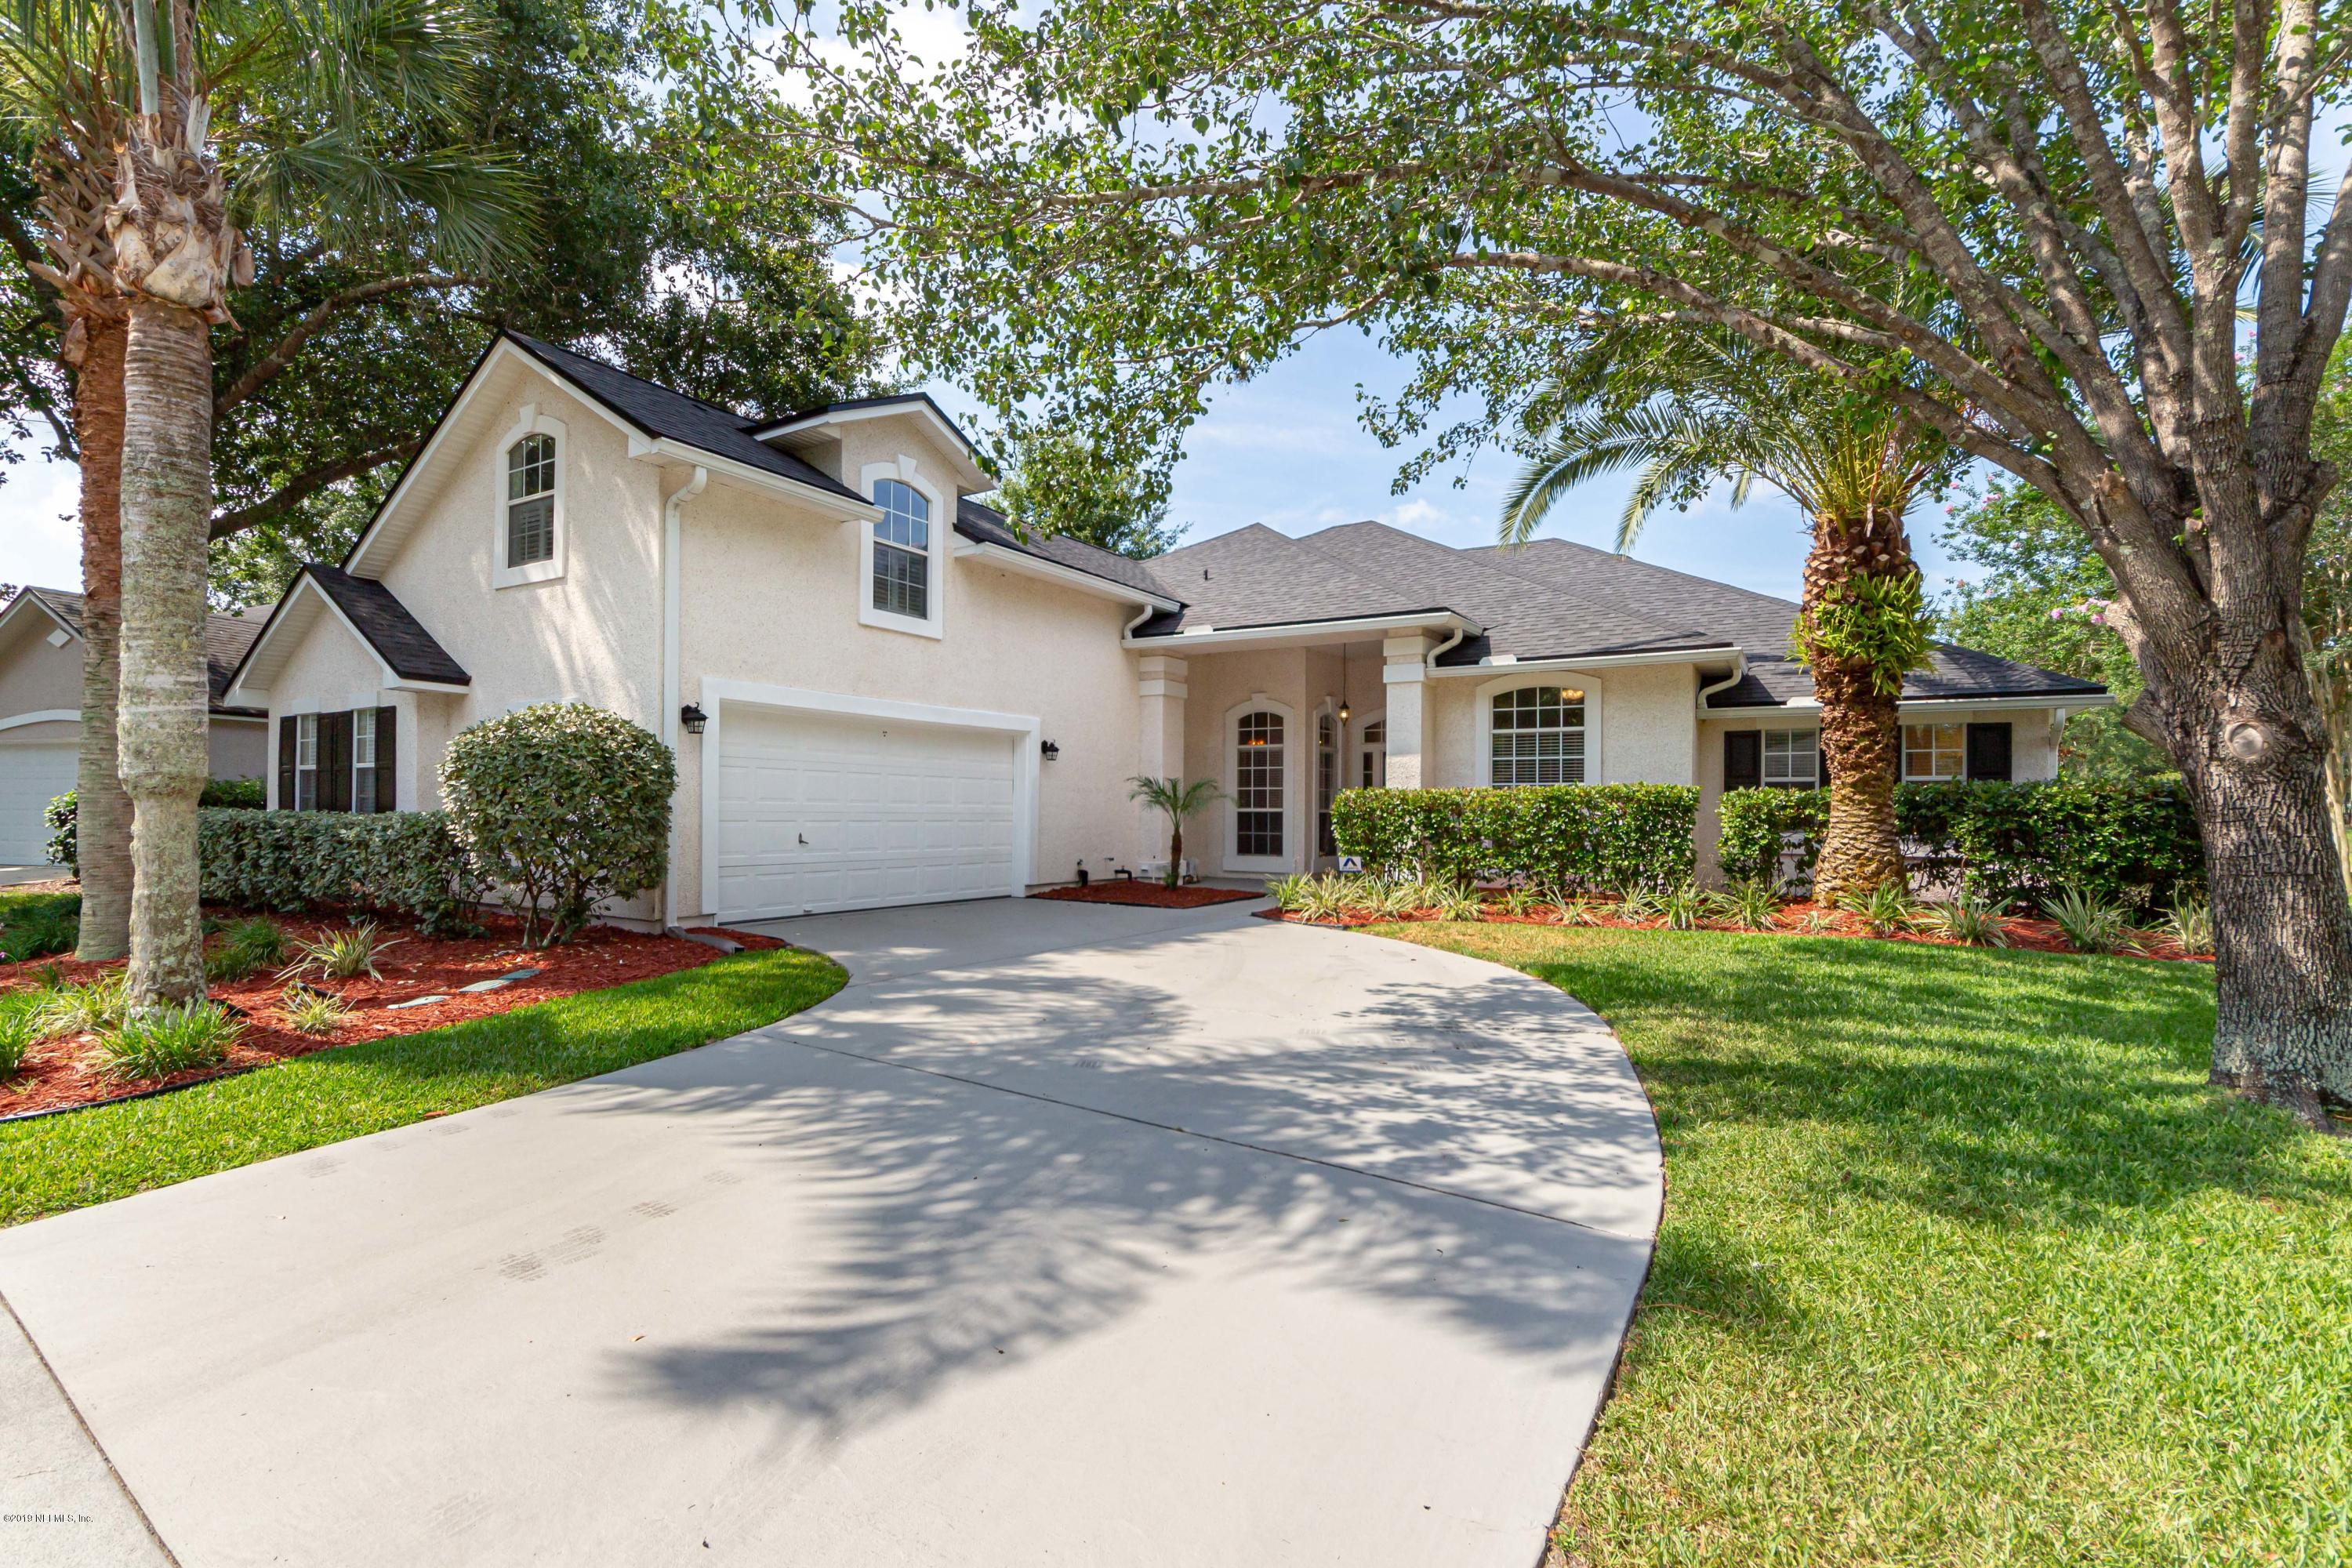 944 BLACKBERRY, ST JOHNS, FLORIDA 32259, 5 Bedrooms Bedrooms, ,3 BathroomsBathrooms,Residential - single family,For sale,BLACKBERRY,999131